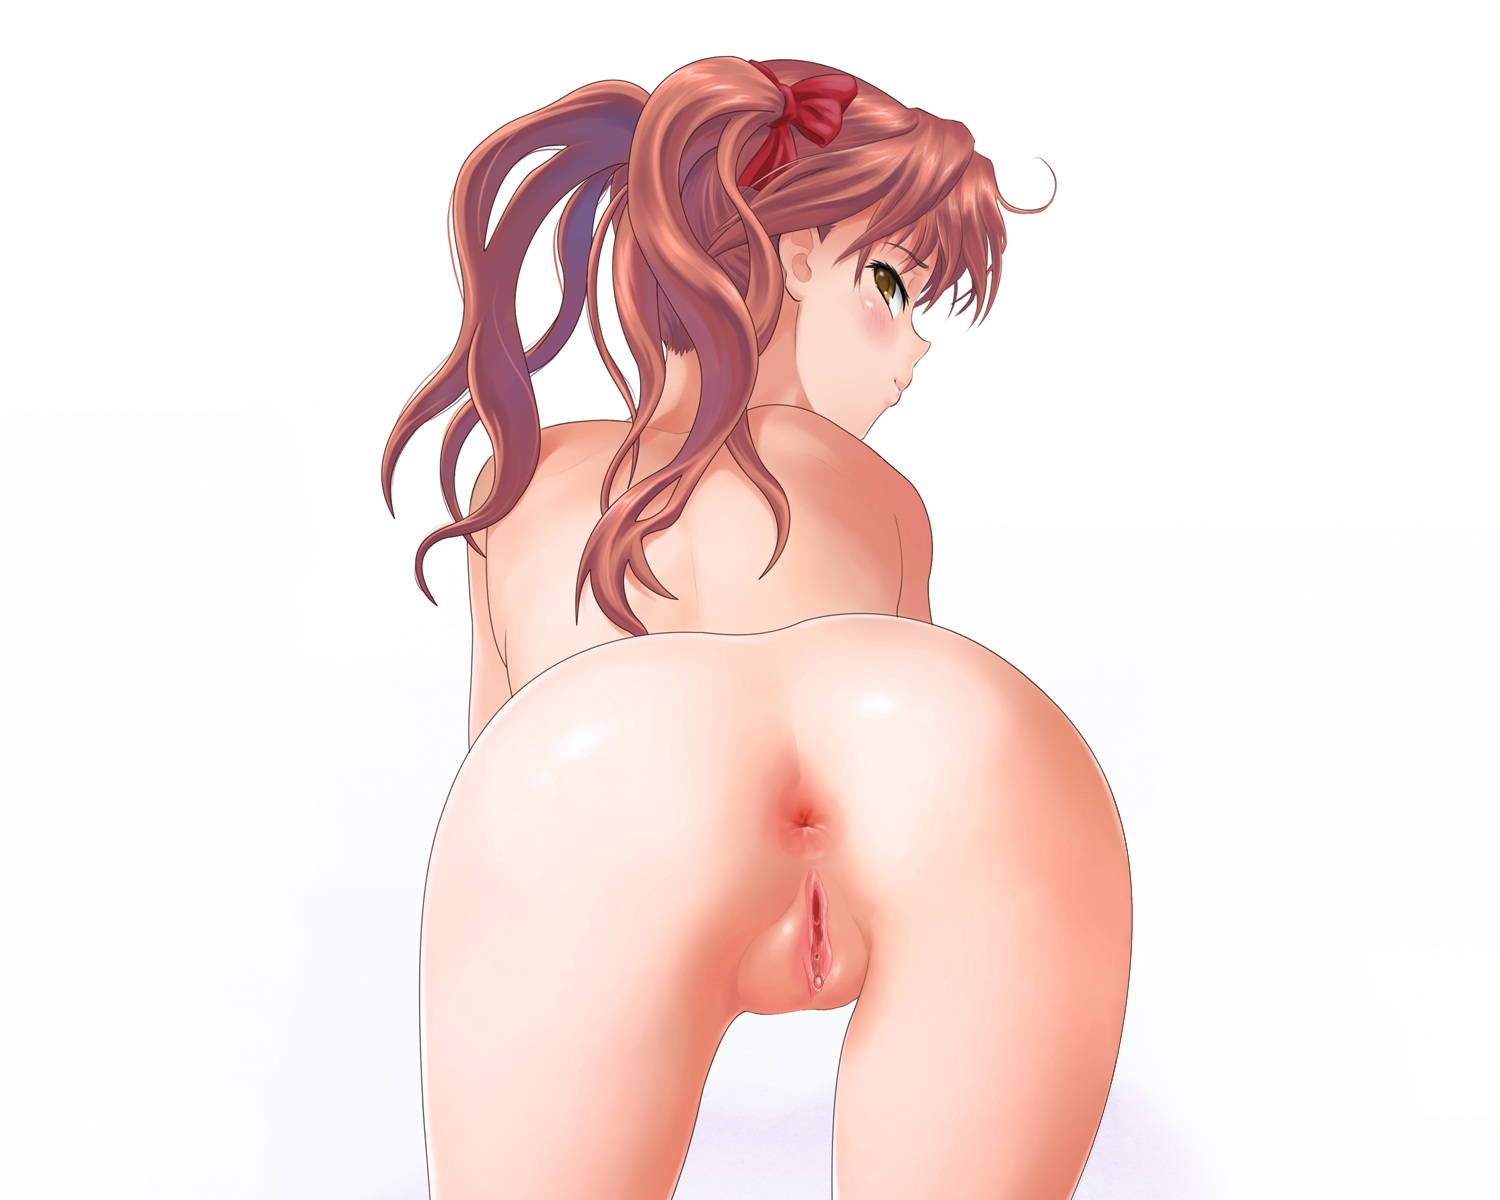 anus ass blush brown_hair long_hair misakamitoko0903 nude photoshop pussy shirai_kuroko to_aru_kagaku_no_railgun to_aru_majutsu_no_index twintails uncensored white yellow_eyes